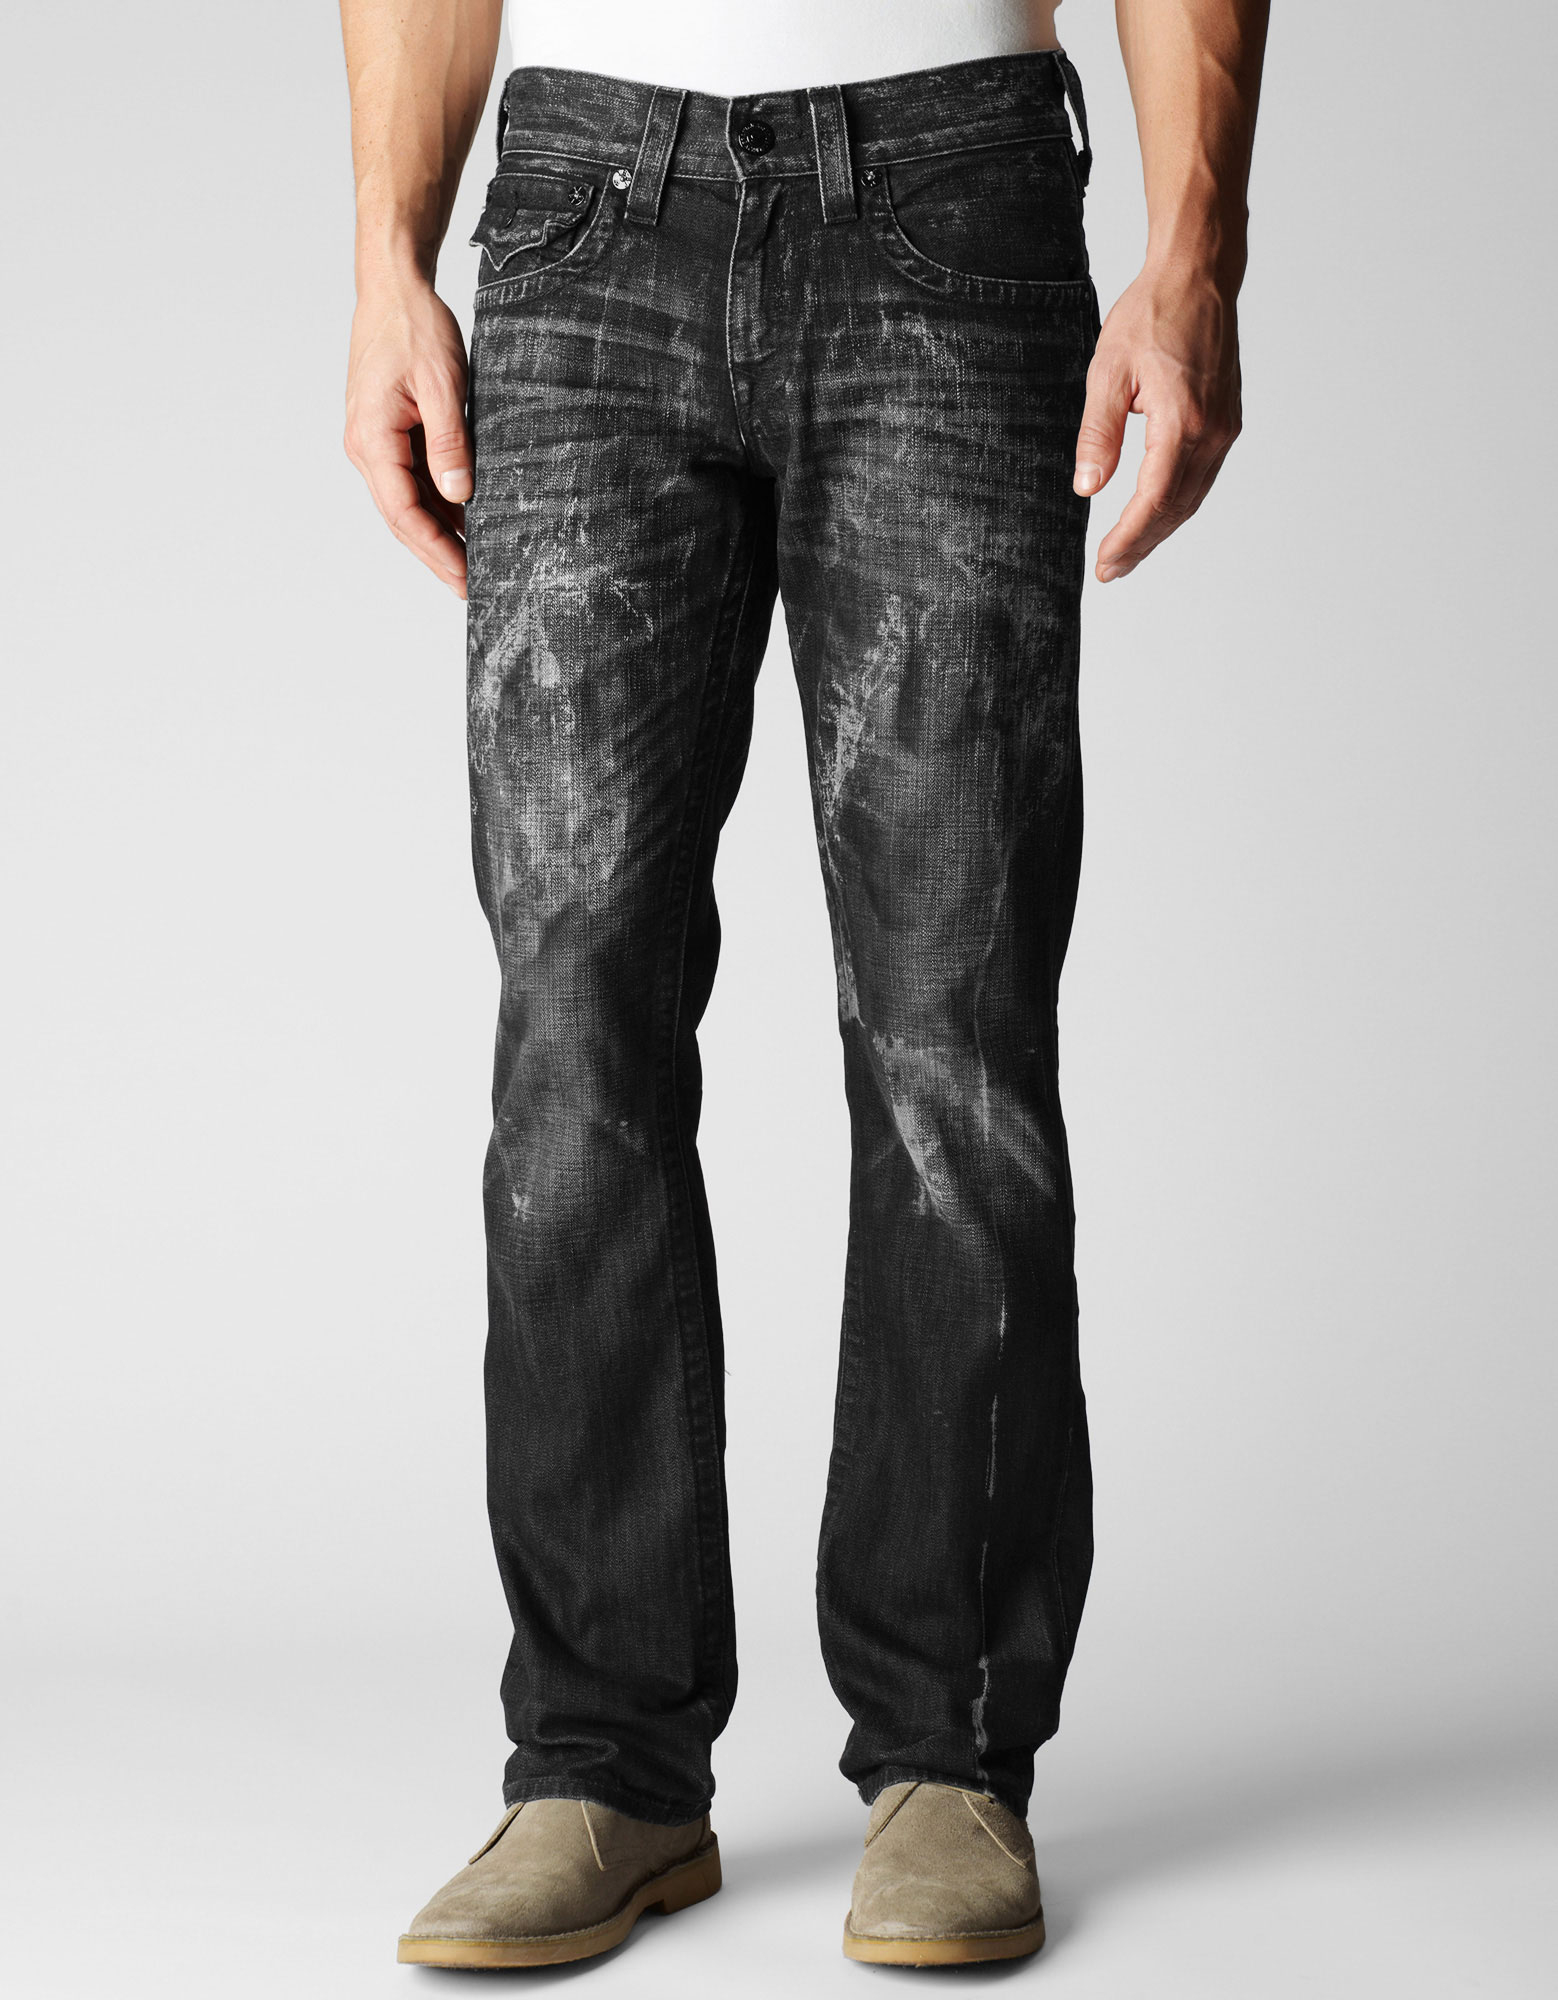 True Religion Ricky Straight Distressed Black Mens Jean in ...